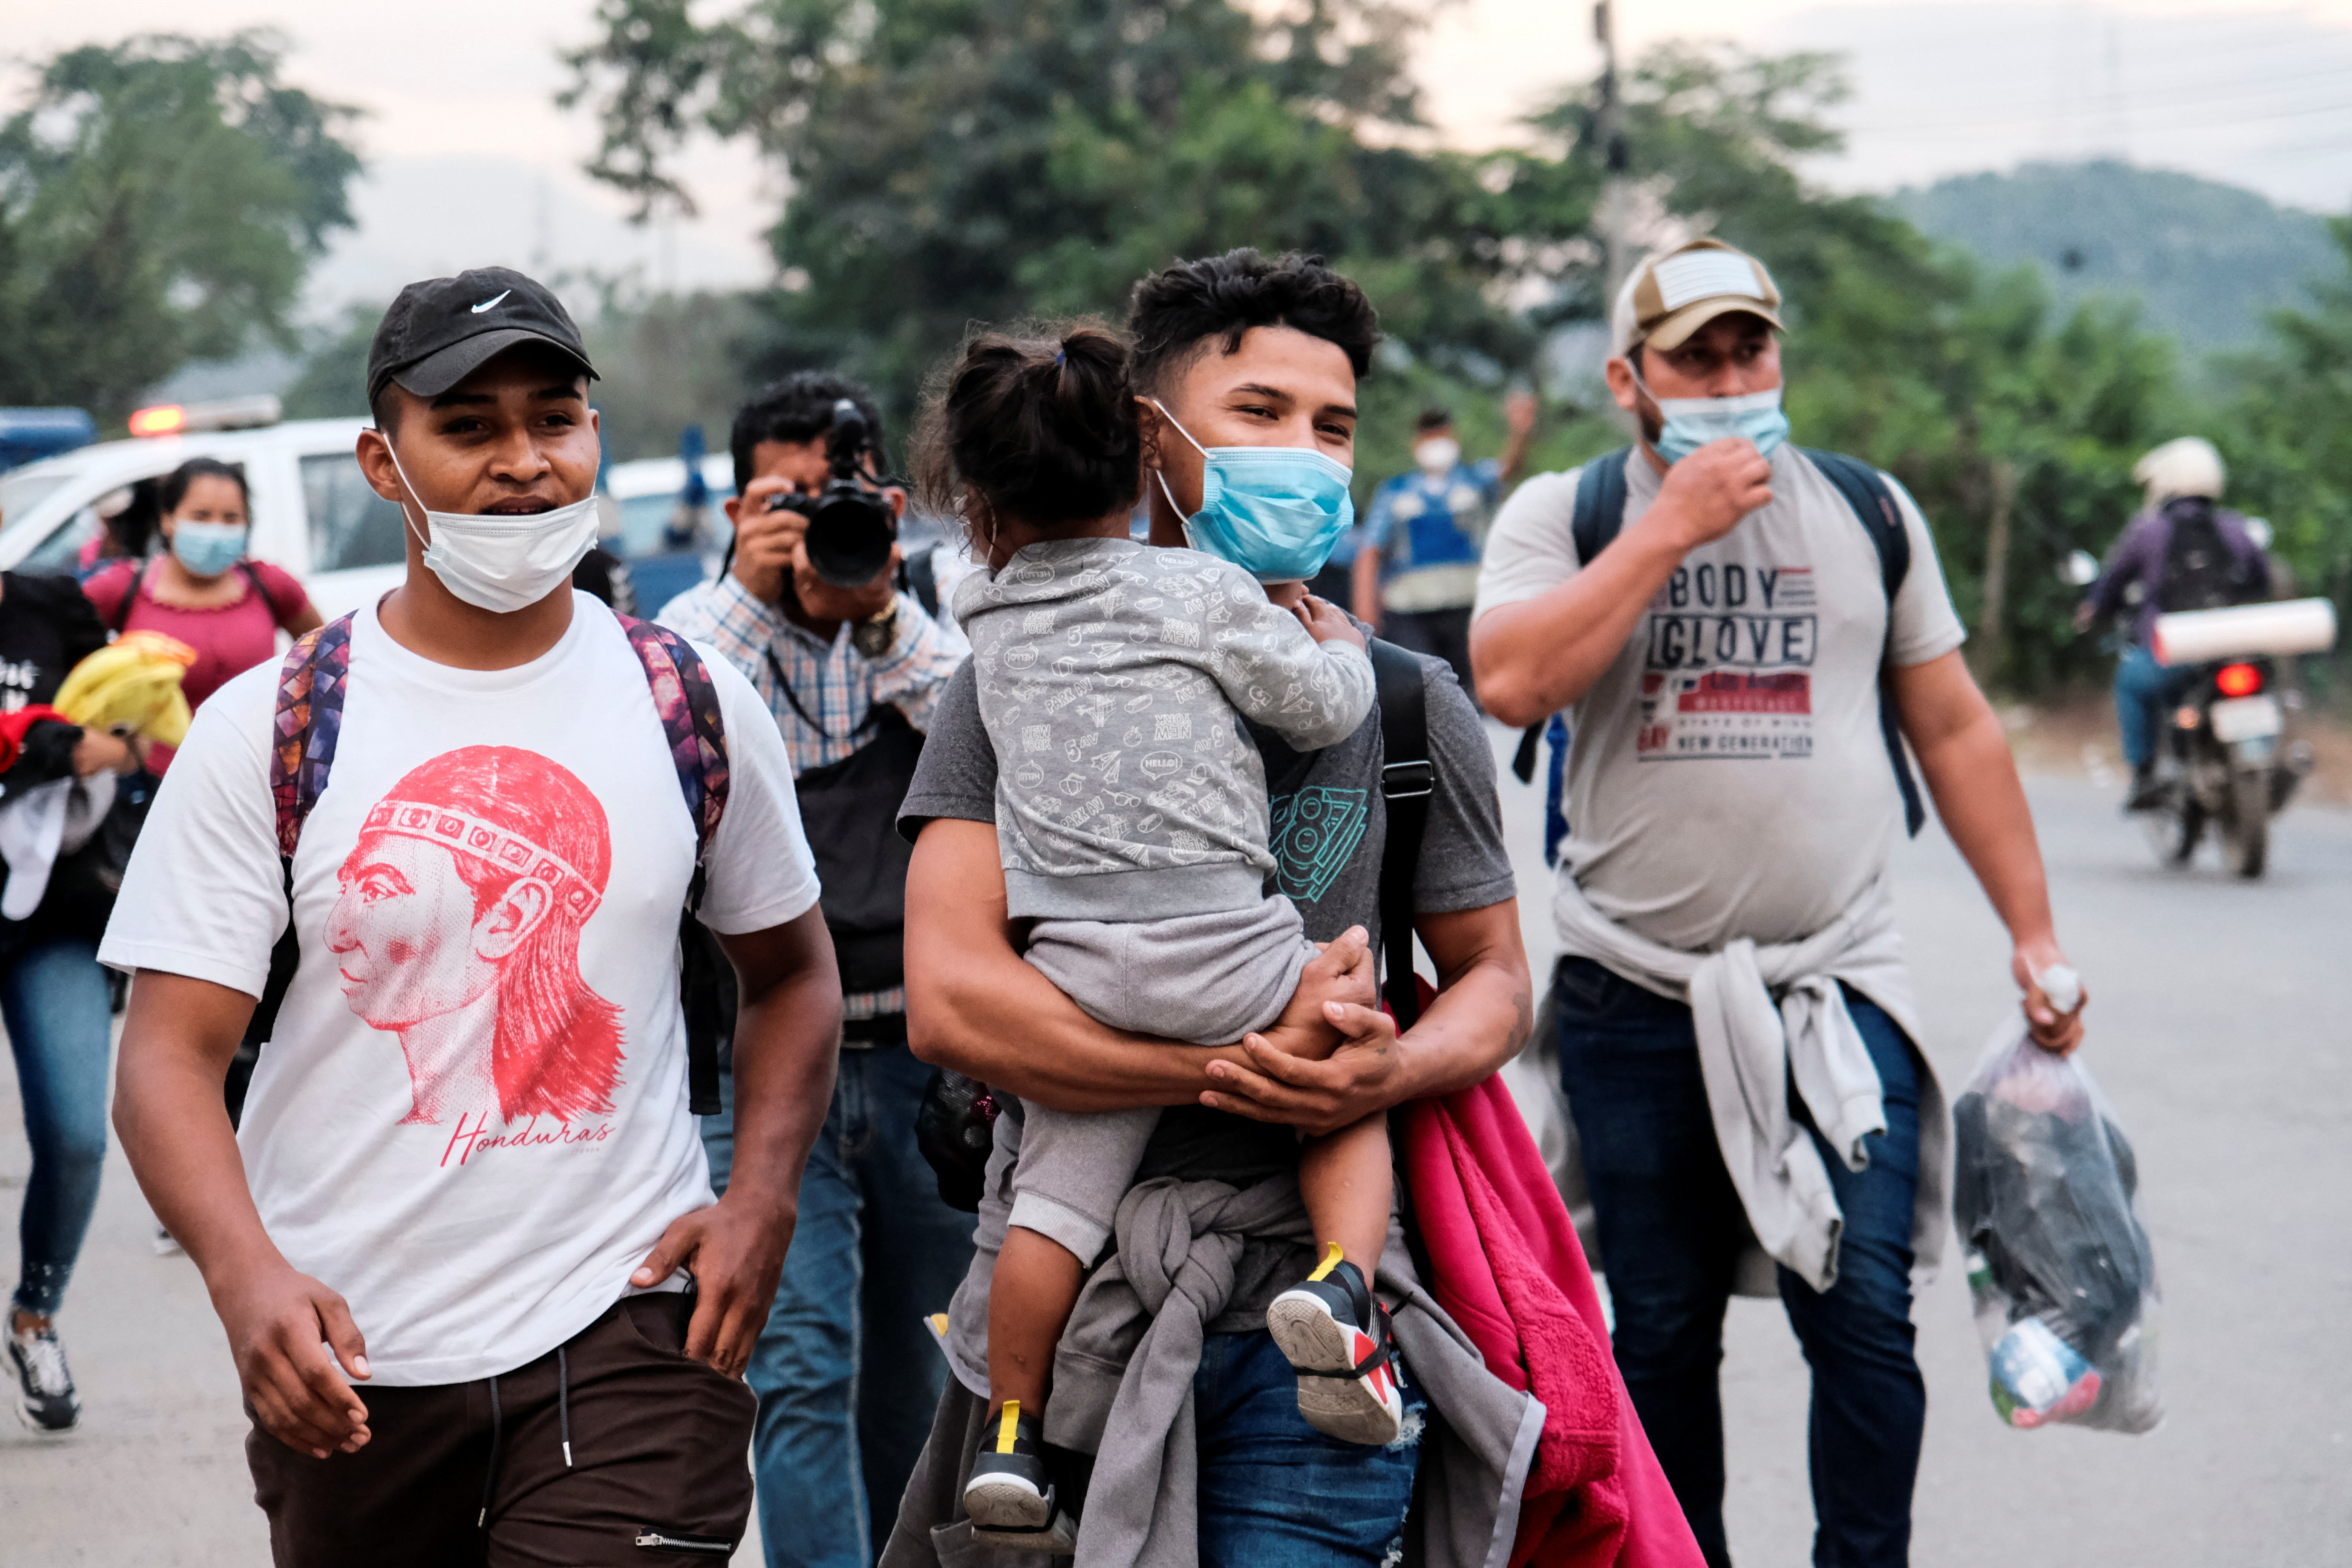 A man carries his baby as he walks along other Hondurans in a new caravan of migrants, set to head to the United States, in San Pedro Sula, Honduras January 15, 2021. REUTERS/Yoseph Amaya